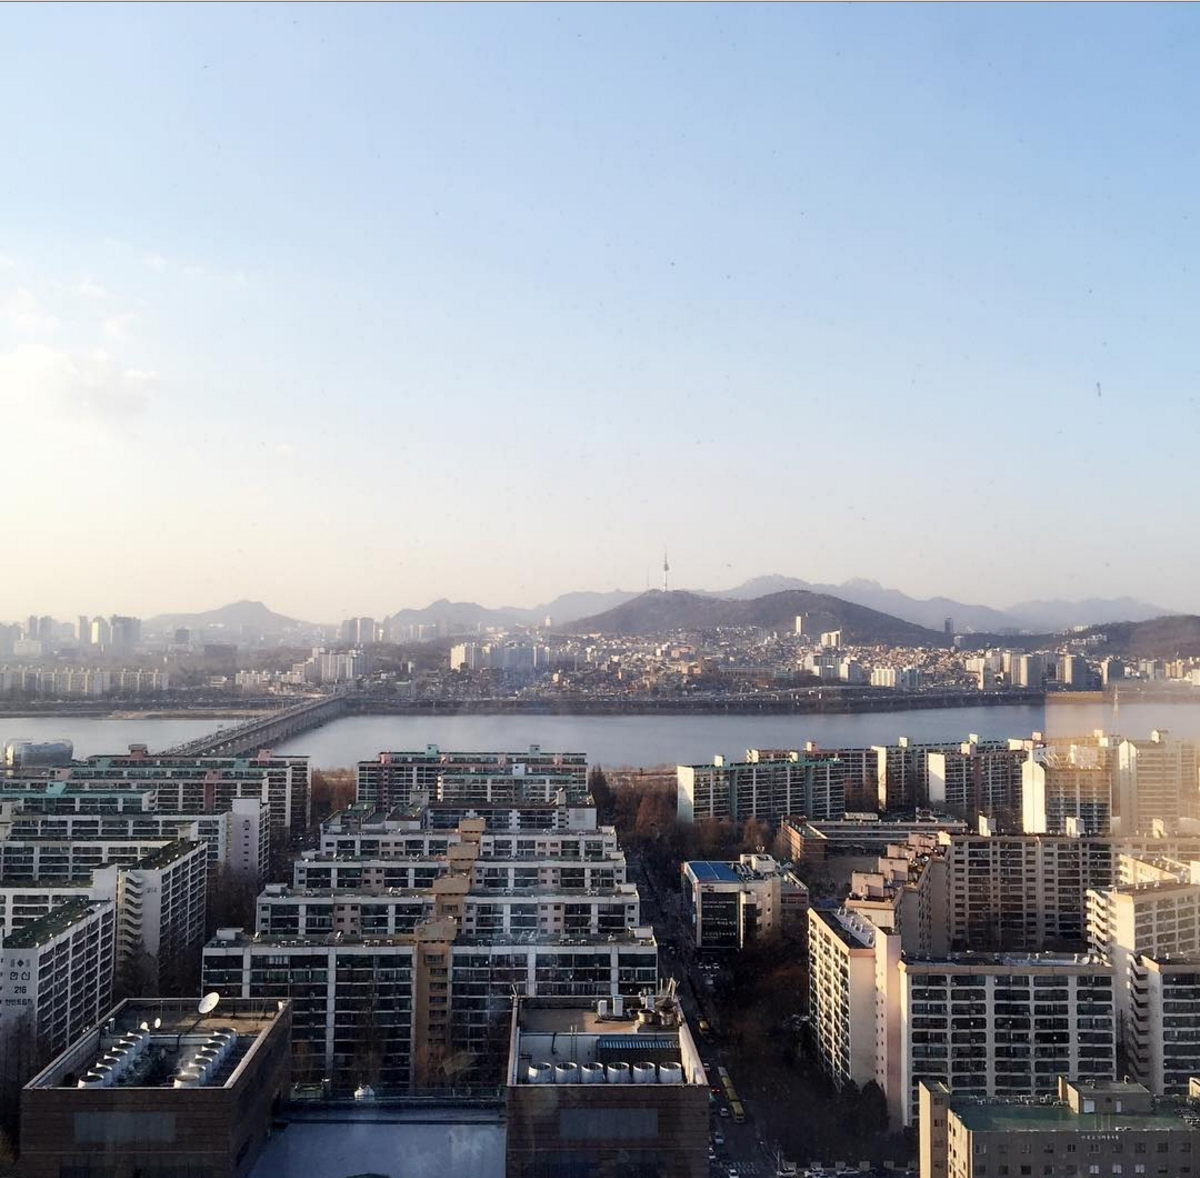 gangnam-style-seoul-south-korea-view-grand-hyatt-hotel